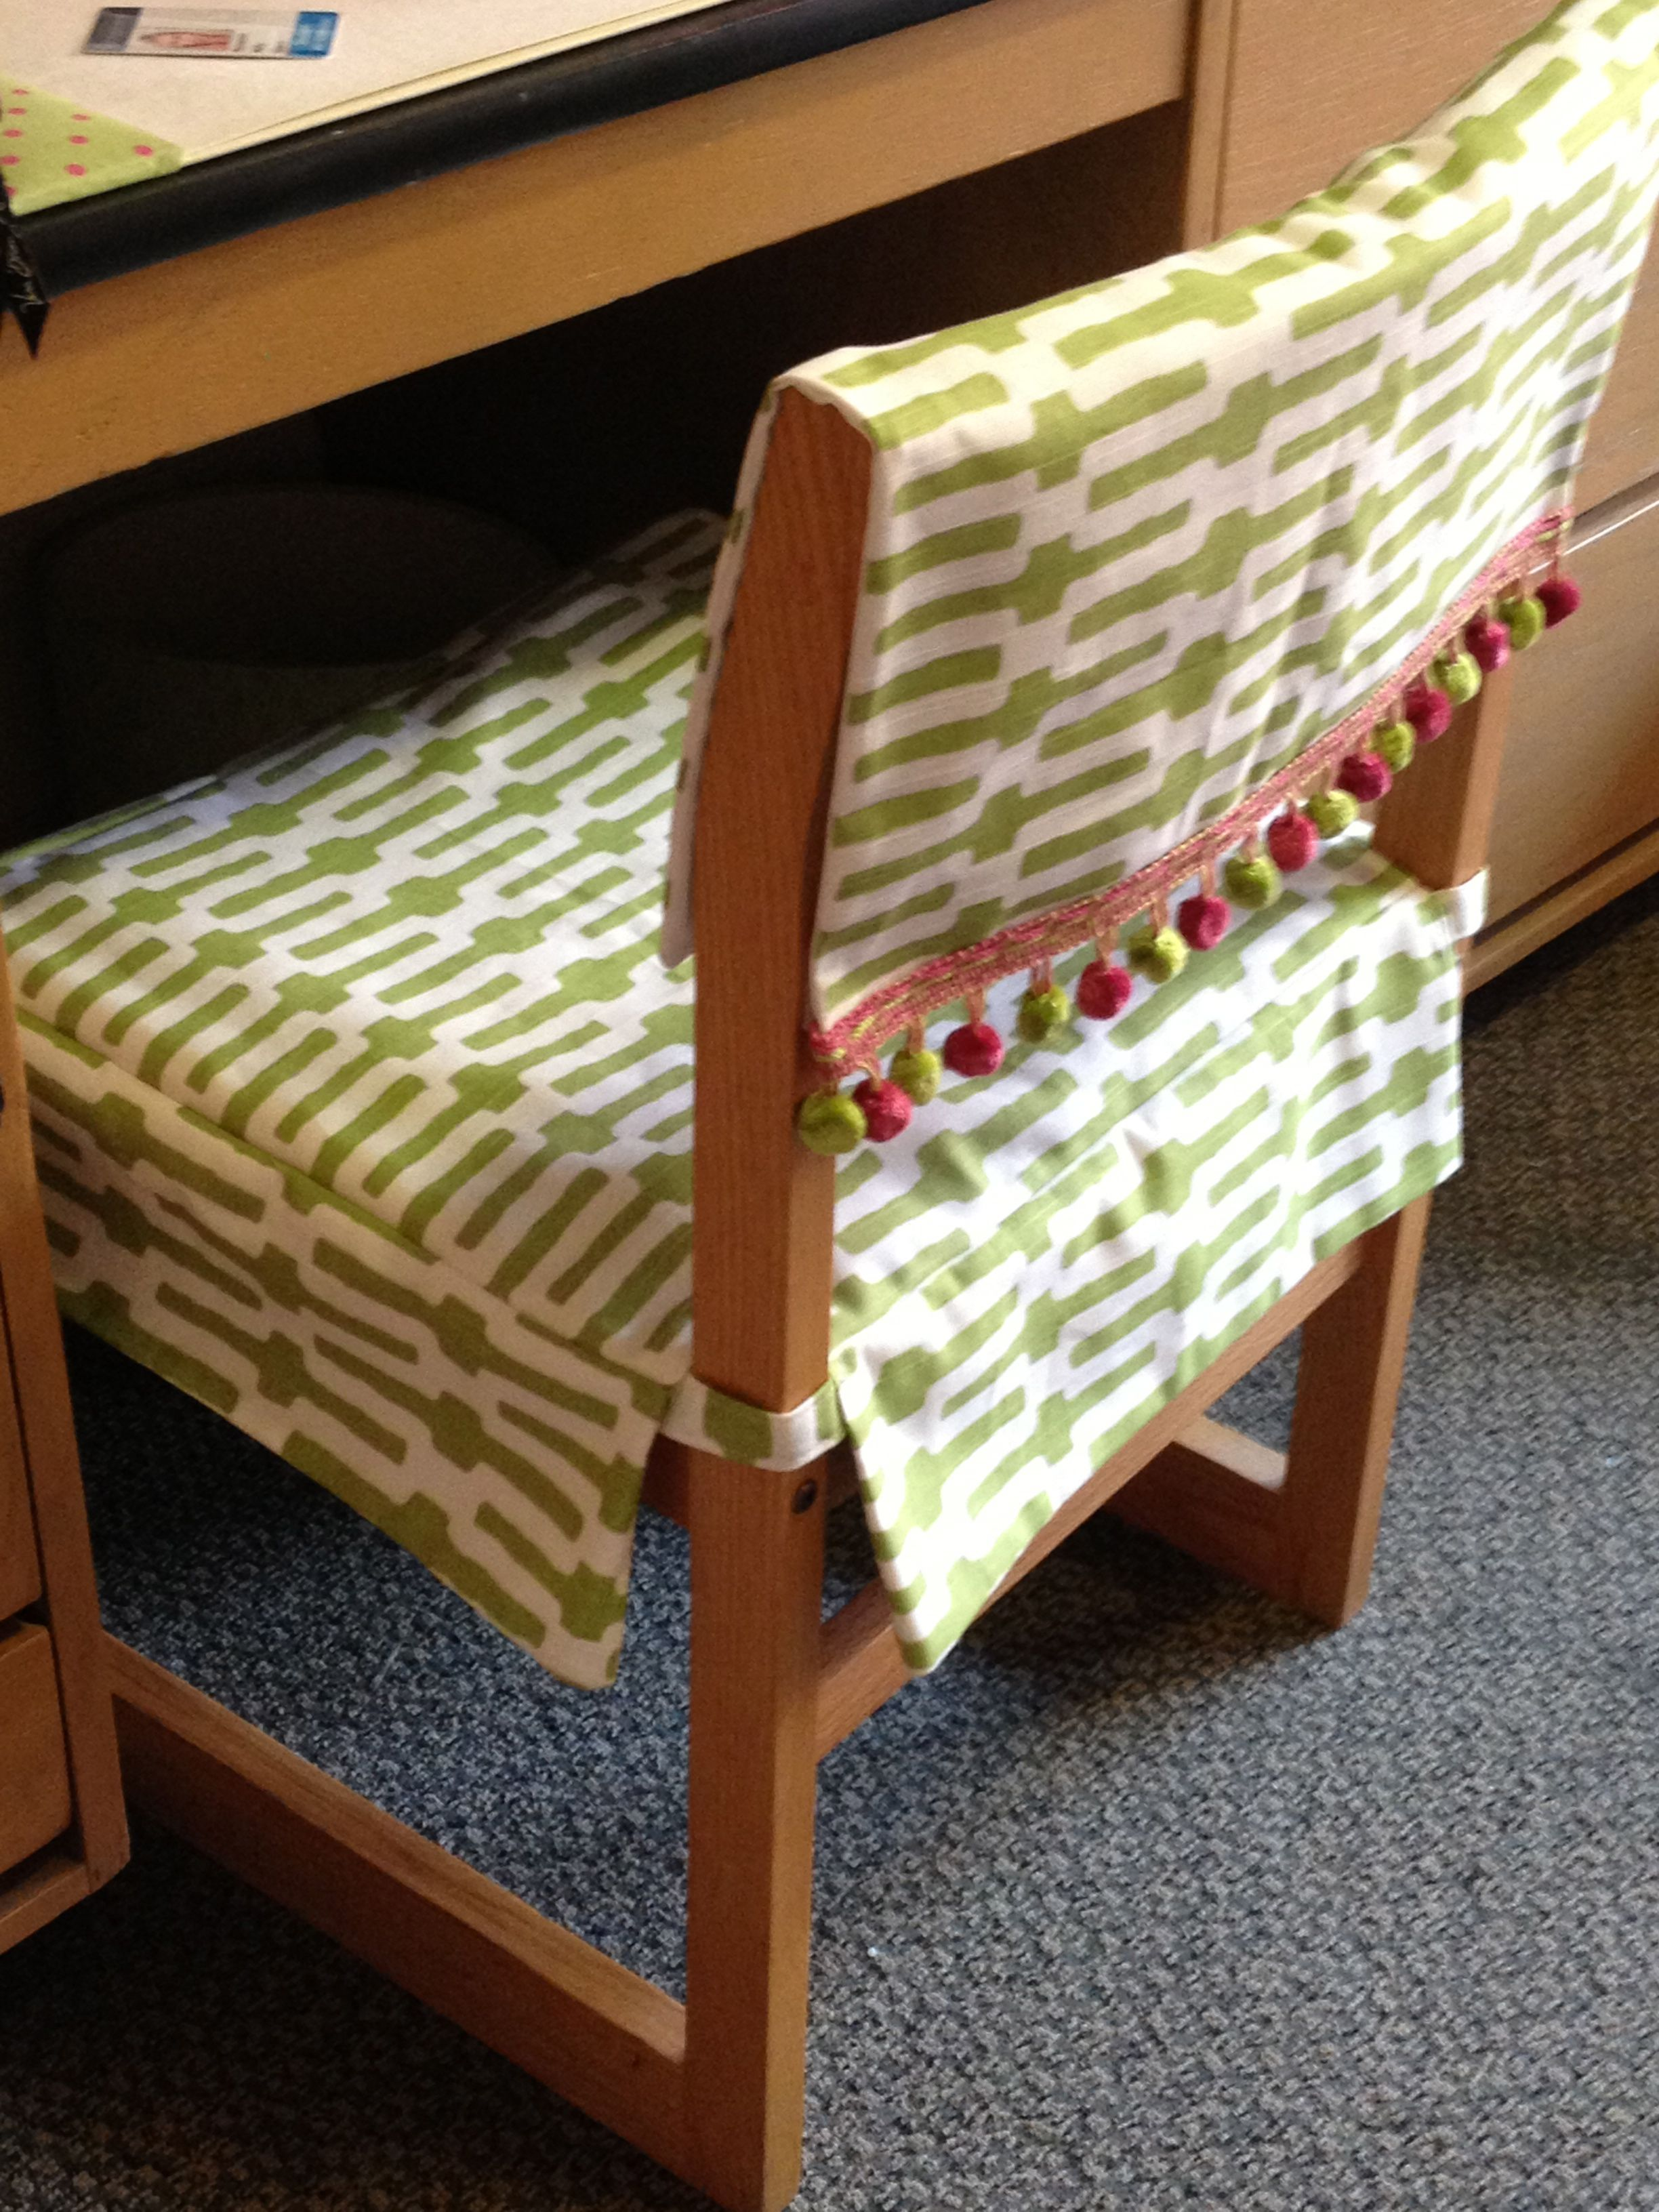 Dorm Room Chairs My Roommate 39s Mom Made Us These Awesome Desk Chair Covers